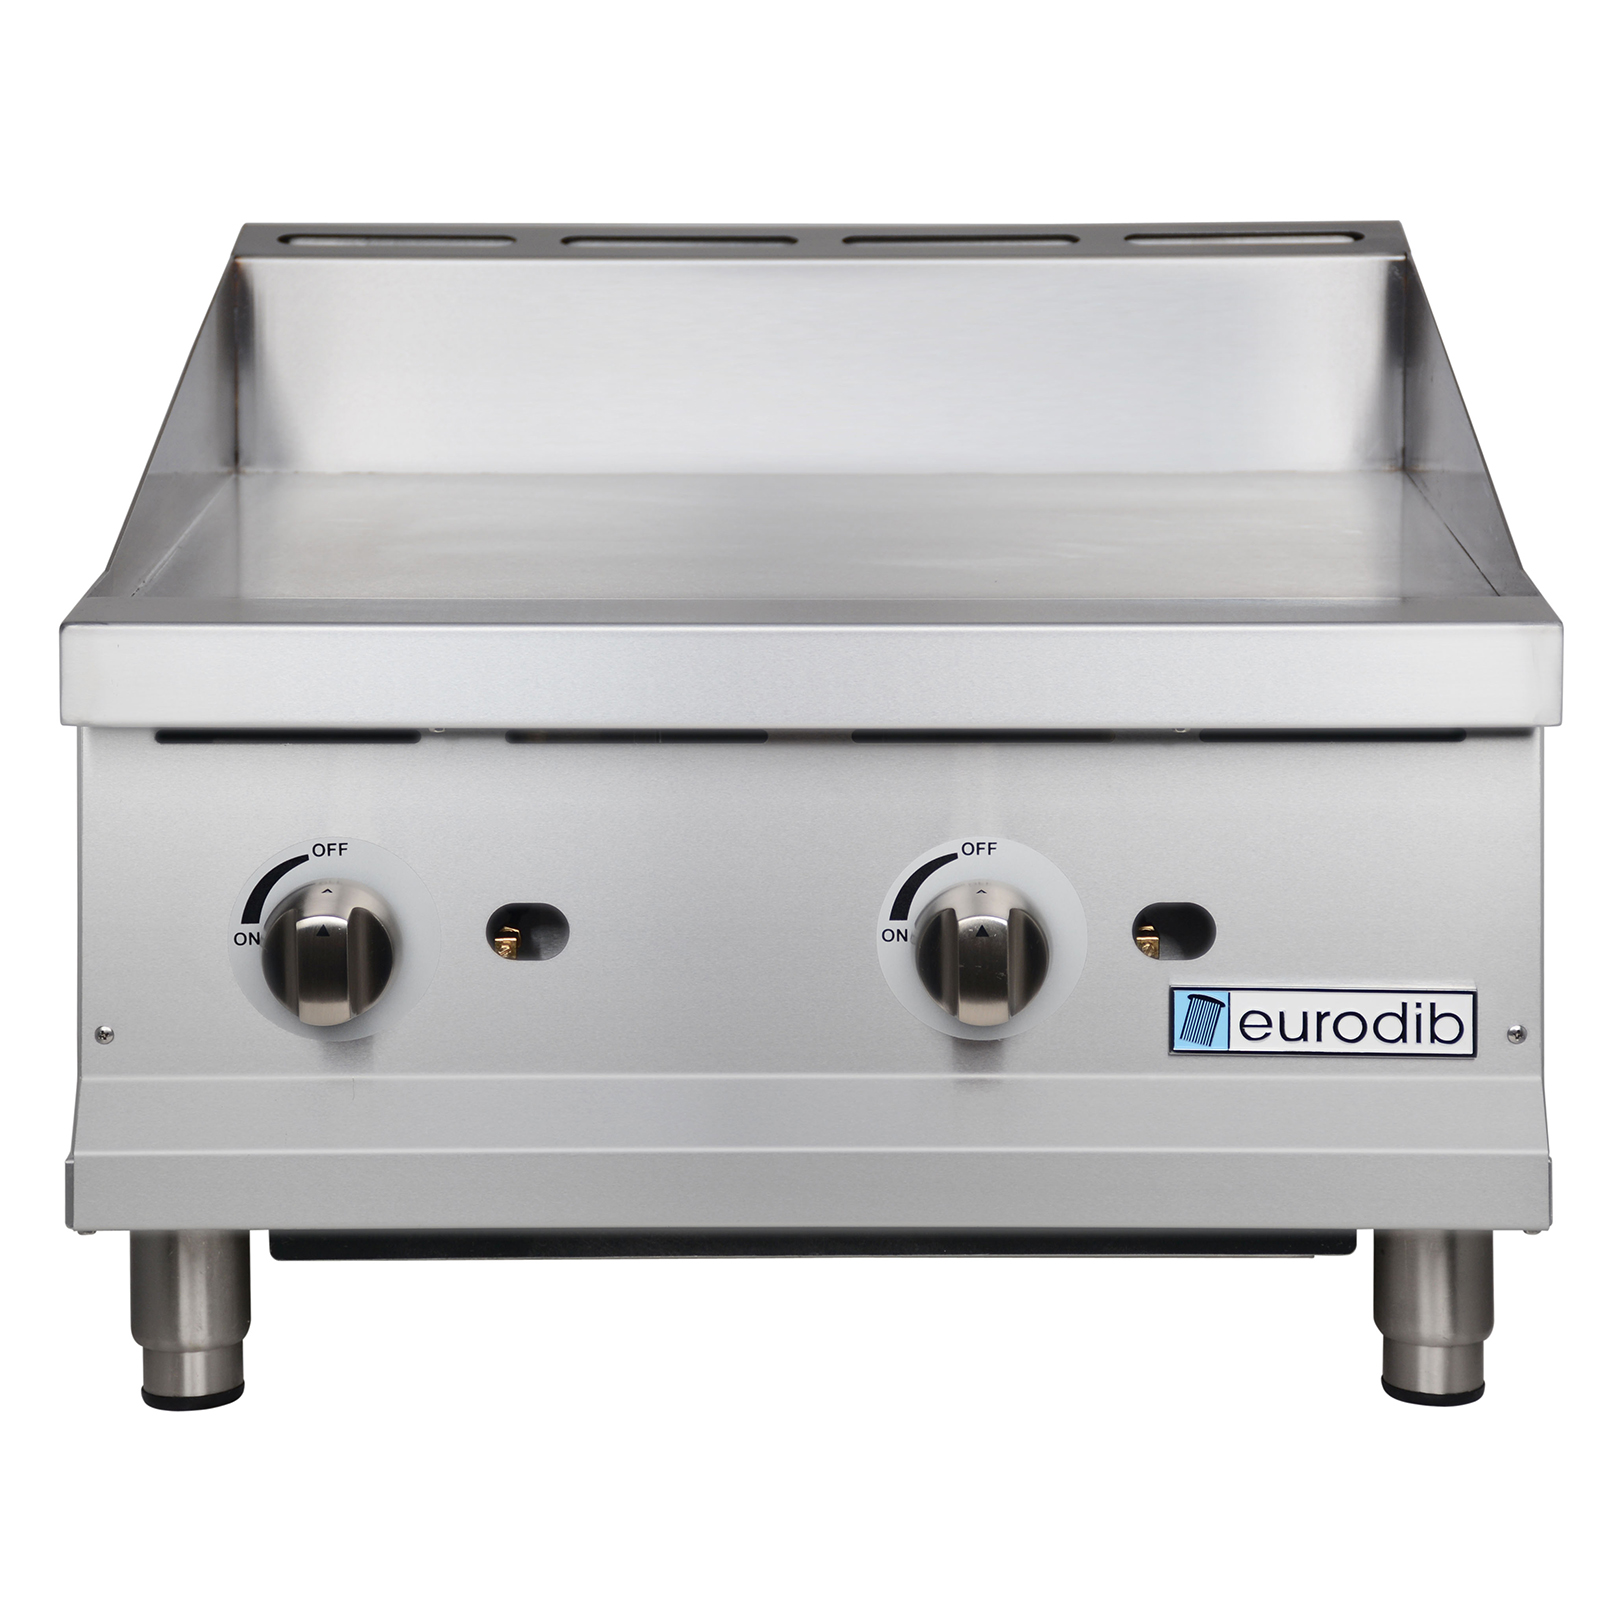 Eurodib USA T-G24 griddle, gas, countertop